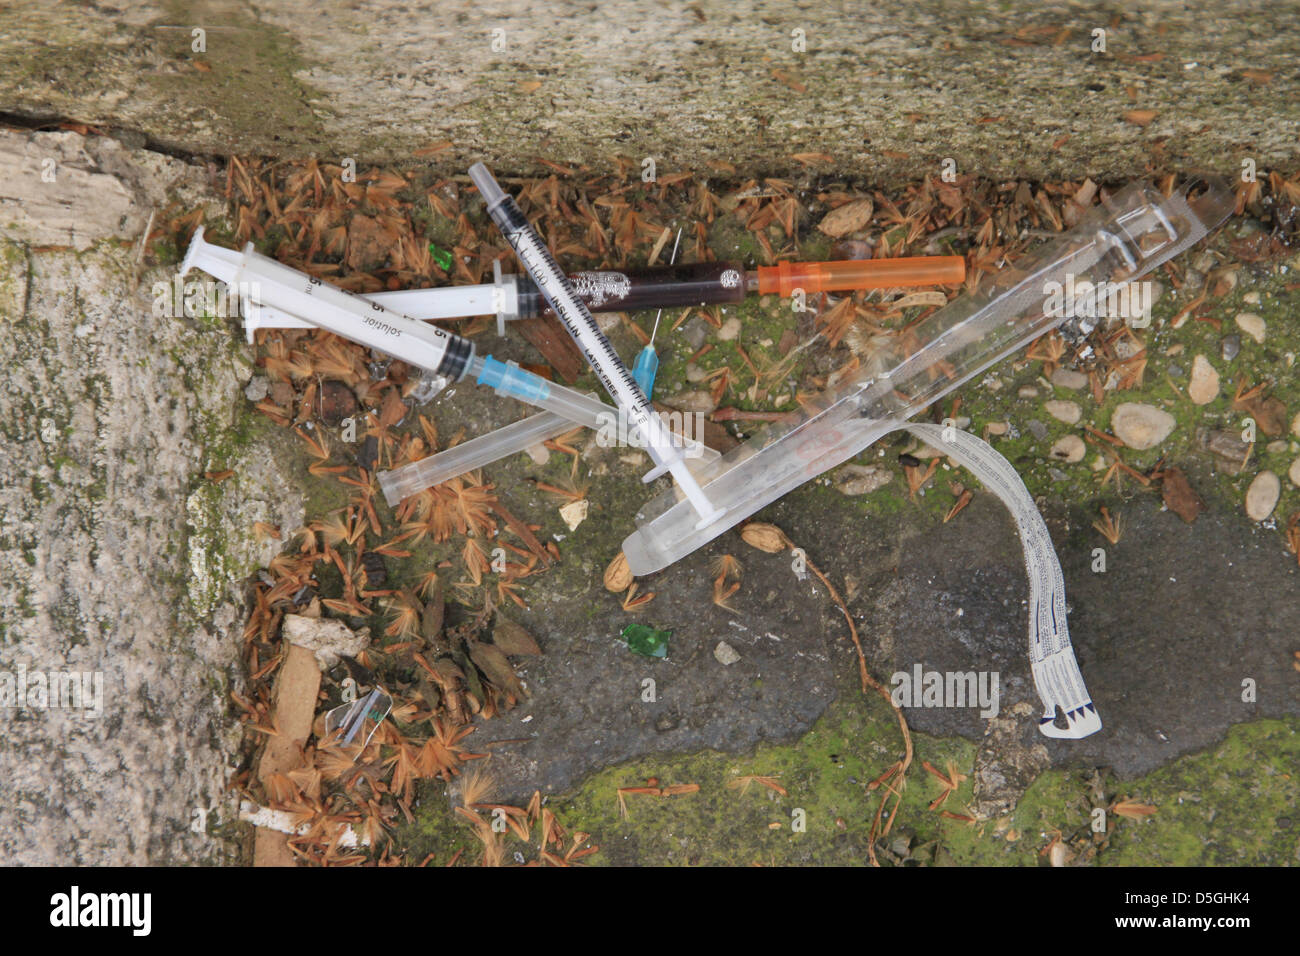 Syringes drug addict Stock Photo: 55069480 - Alamy